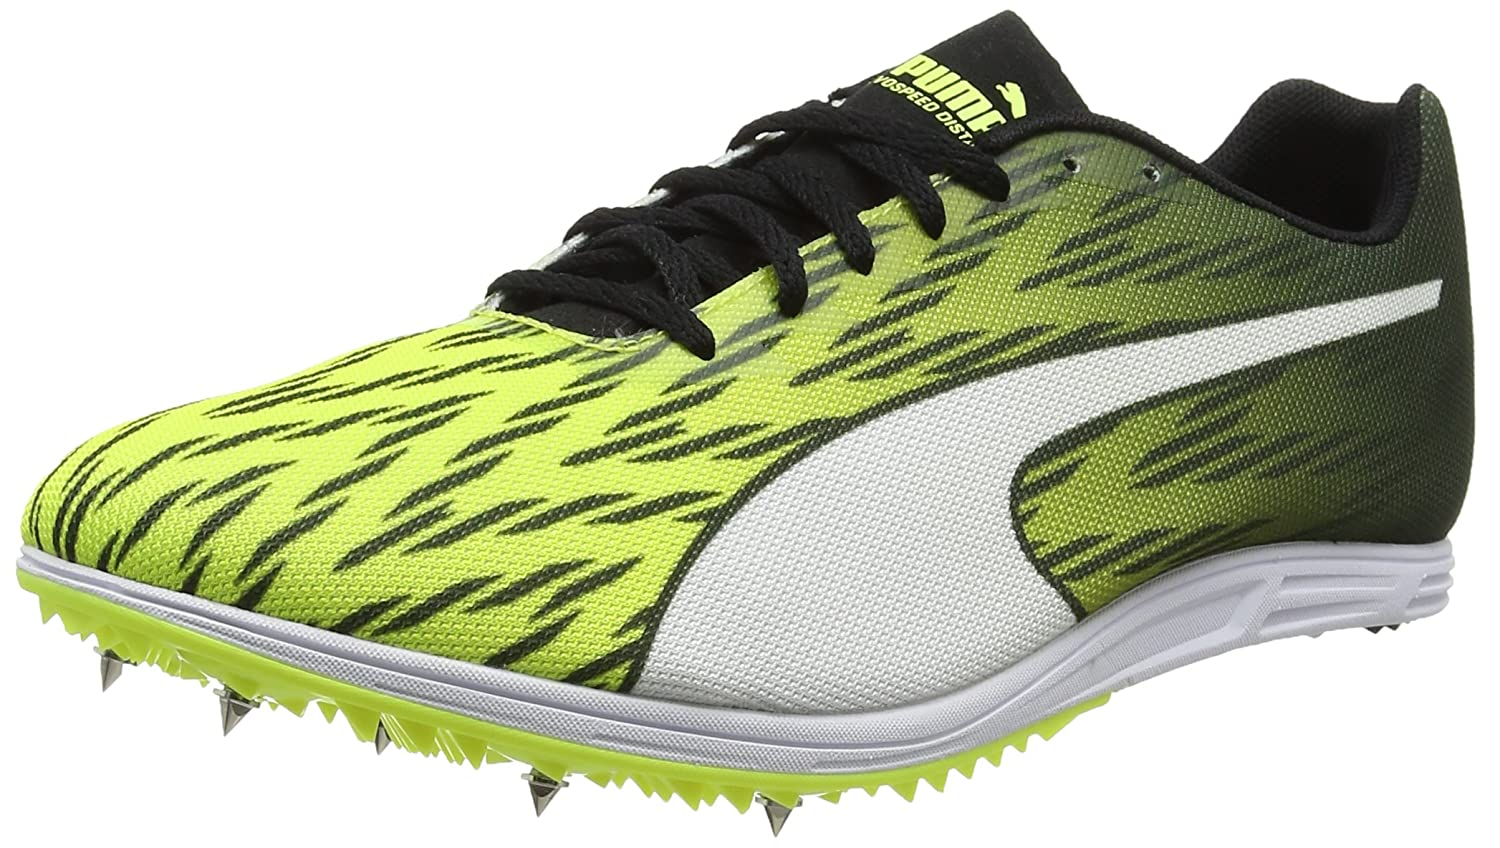 Puma Evospeed Distance 7, Zapatillas de Atletismo para Hombre, Amarillo (Safety Yellow Black White), 40.5 EU: Amazon.es: Zapatos y complementos